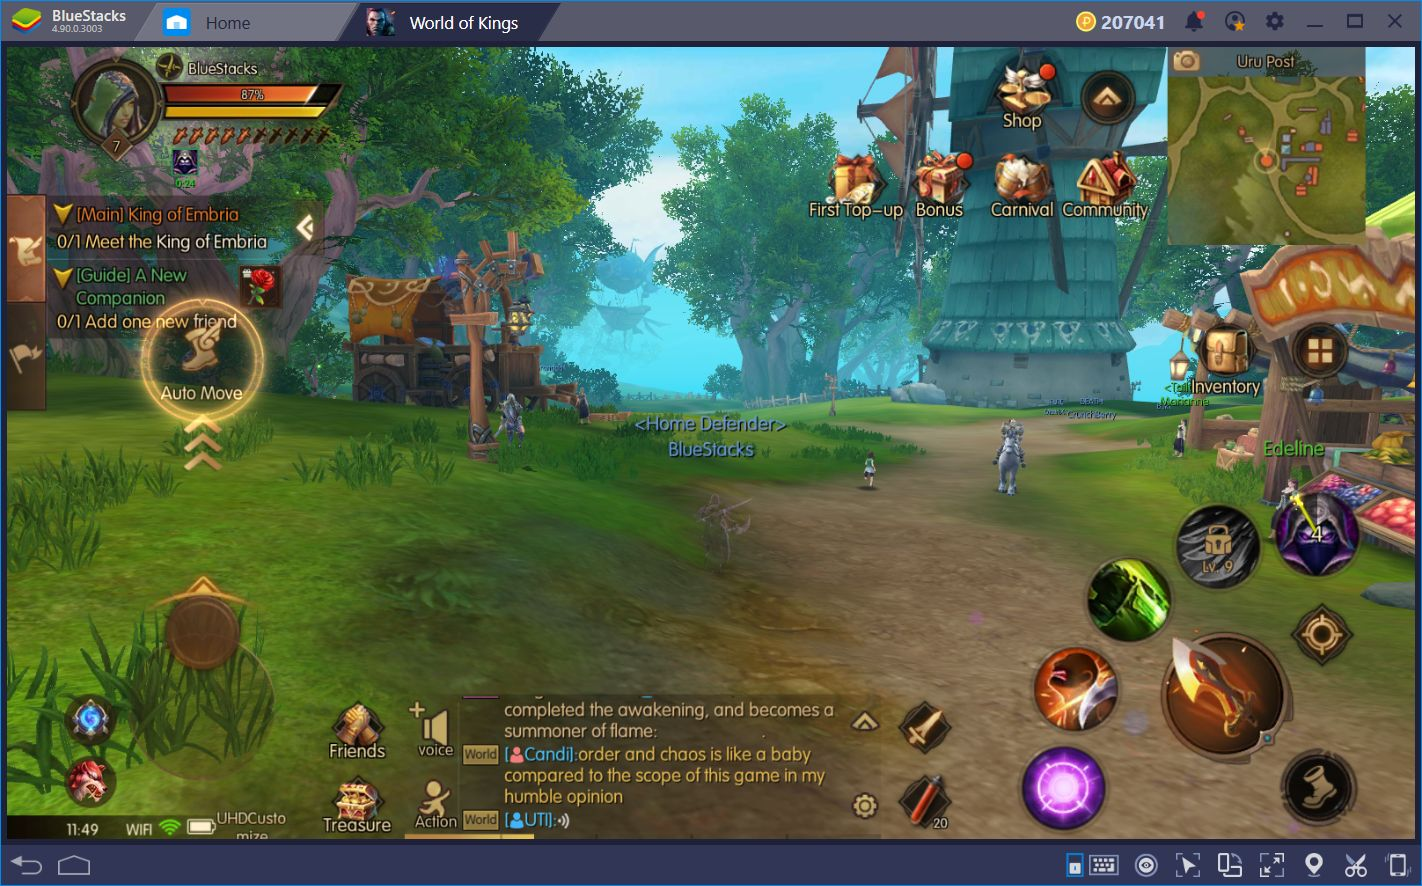 World of Kings en BlueStacks: Impresionantes Gráficas Ultra-HD y Versátiles Esquemas de Control